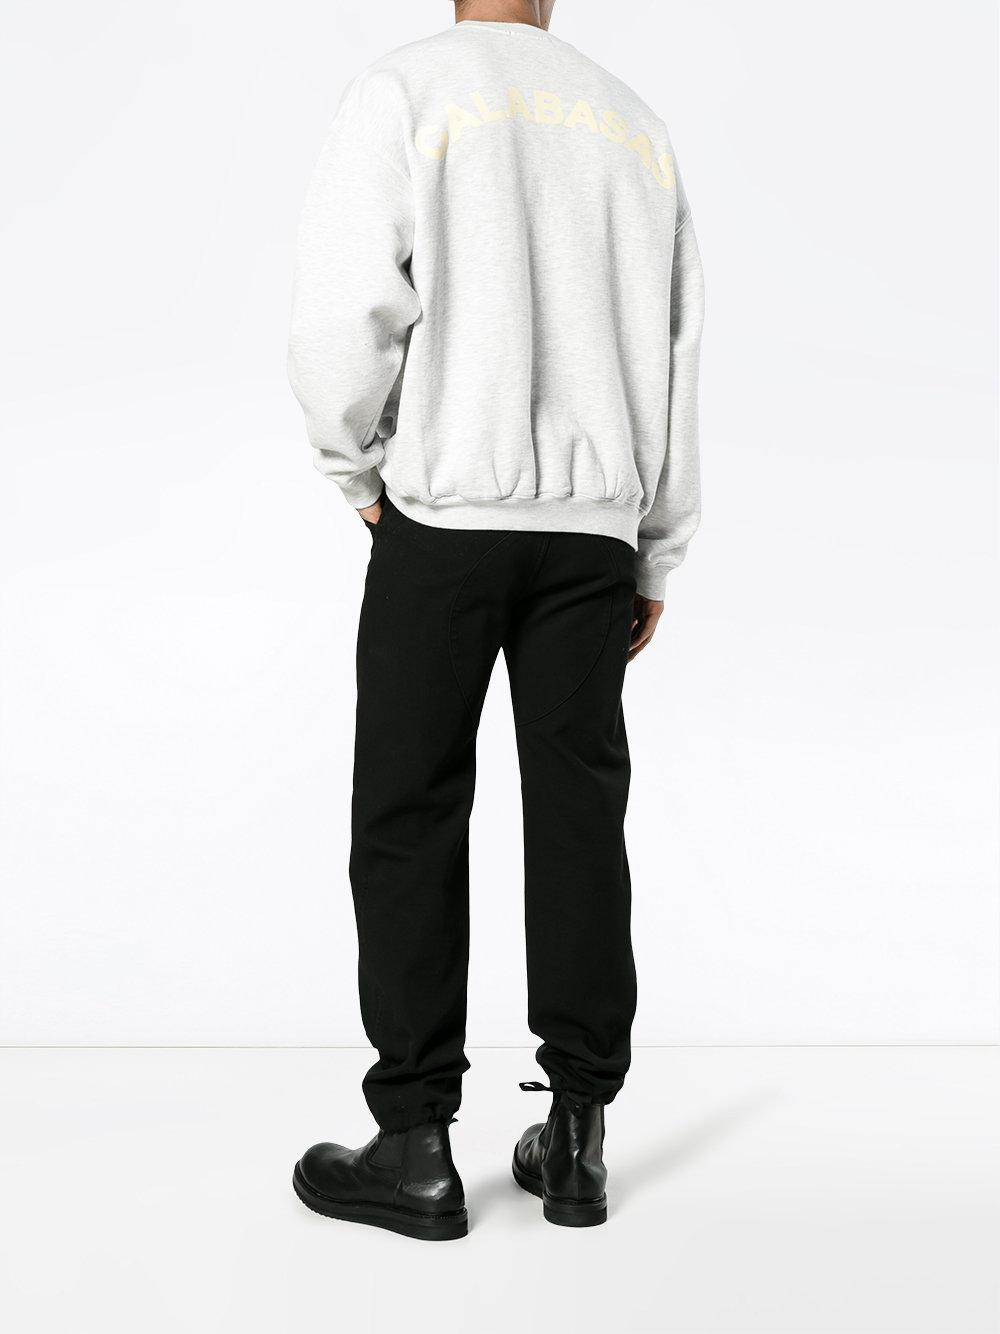 calabasas guys Buy yeezy black 'calabasas' sweatpants on ssensecom and get free shipping & returns in us relaxed-fit garment-washed cotton french terry lounge pants in 'ink' black.